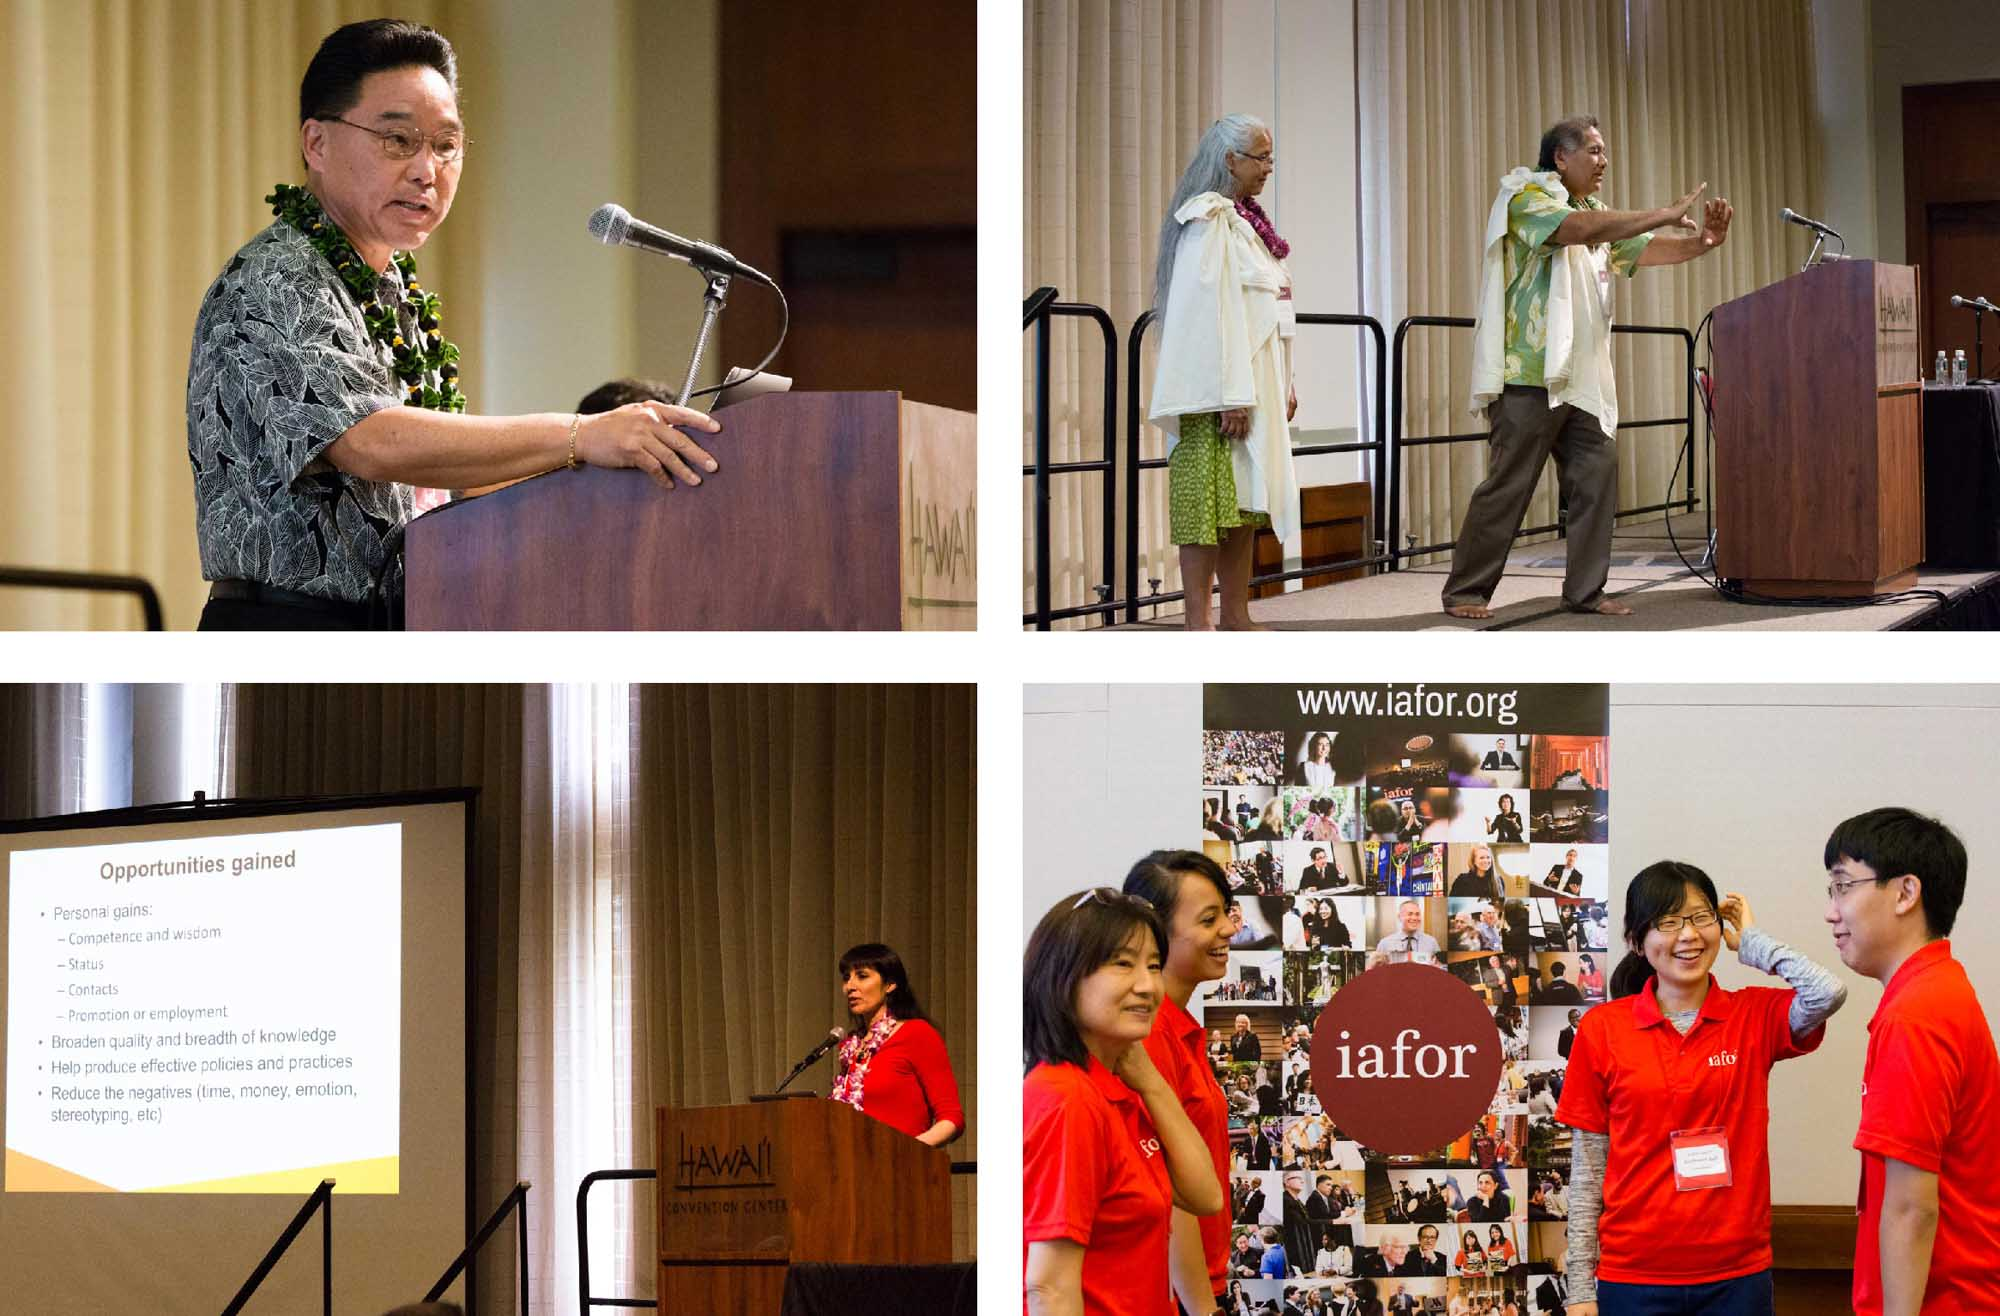 IAFOR Hawaii Conference Series 2019 - Conference Photographs